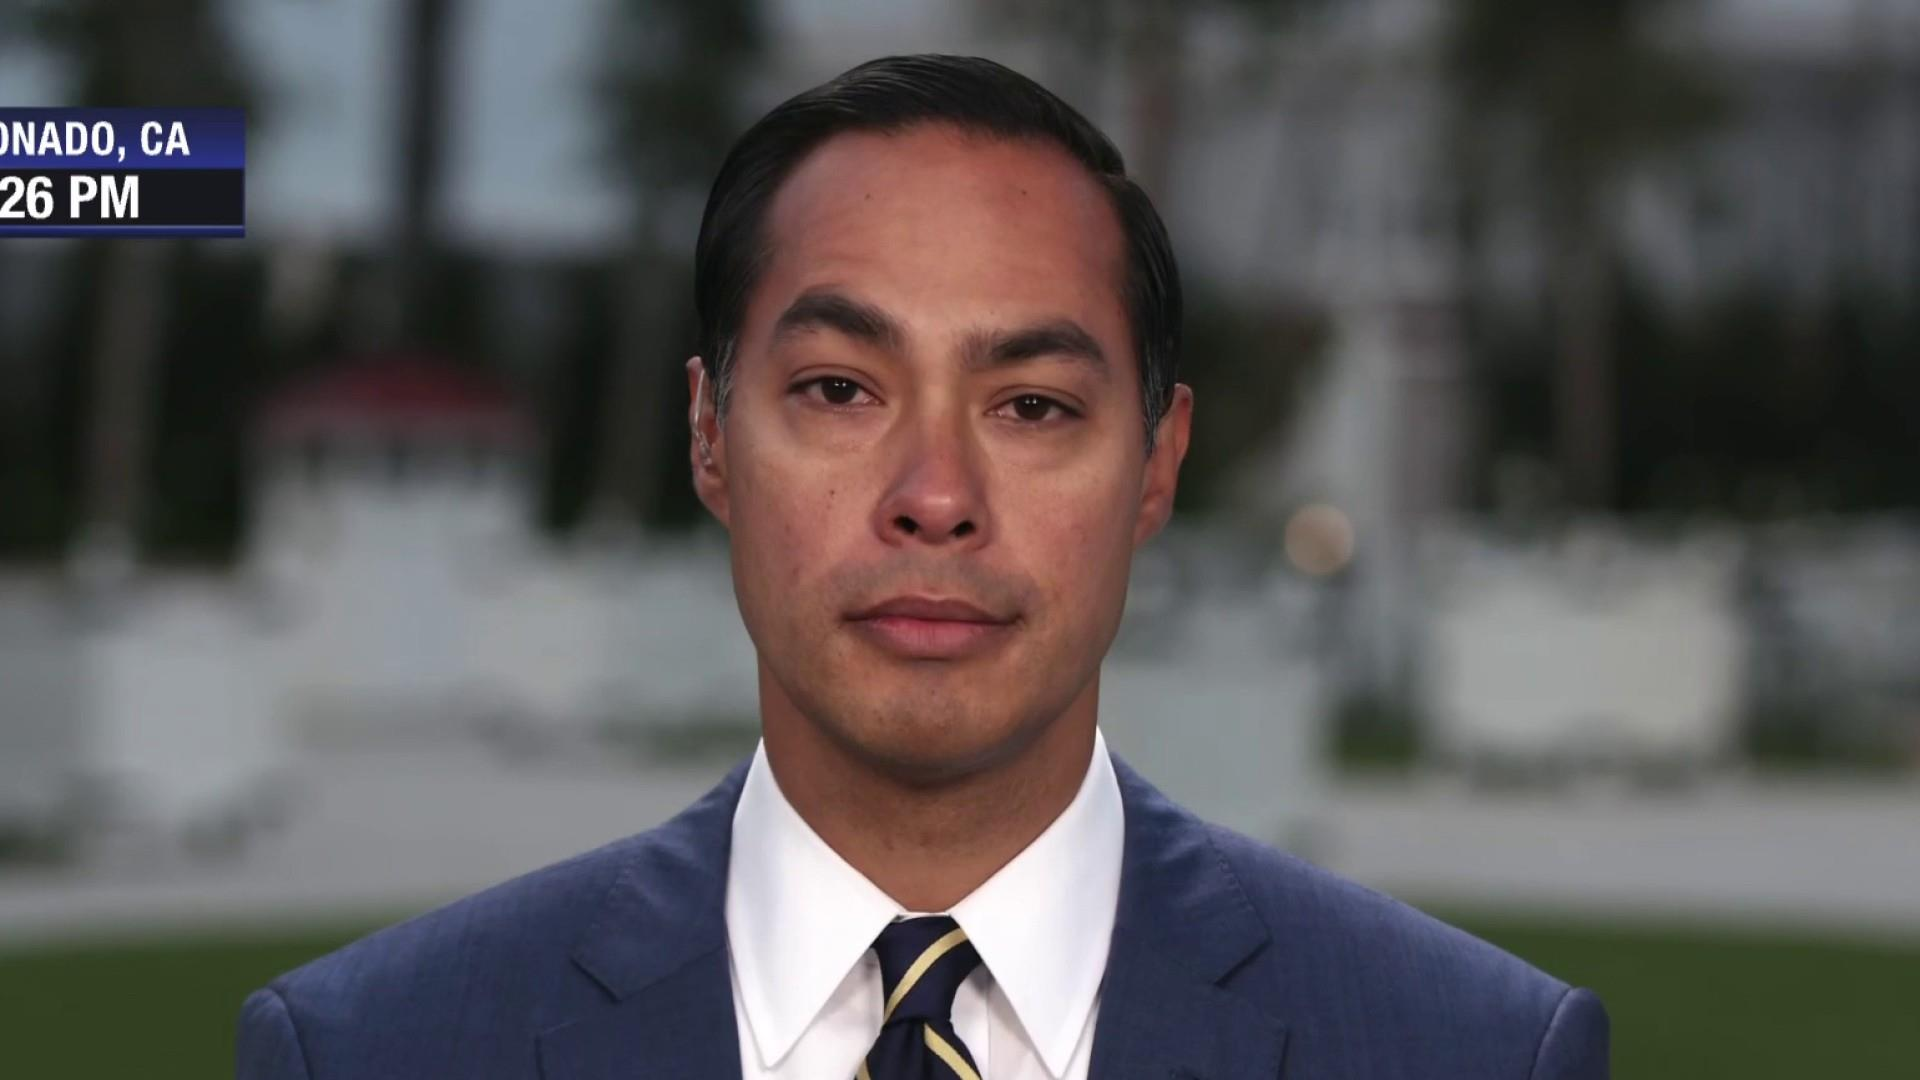 Julian Castro: the best way to channel this anger is to register people to vote